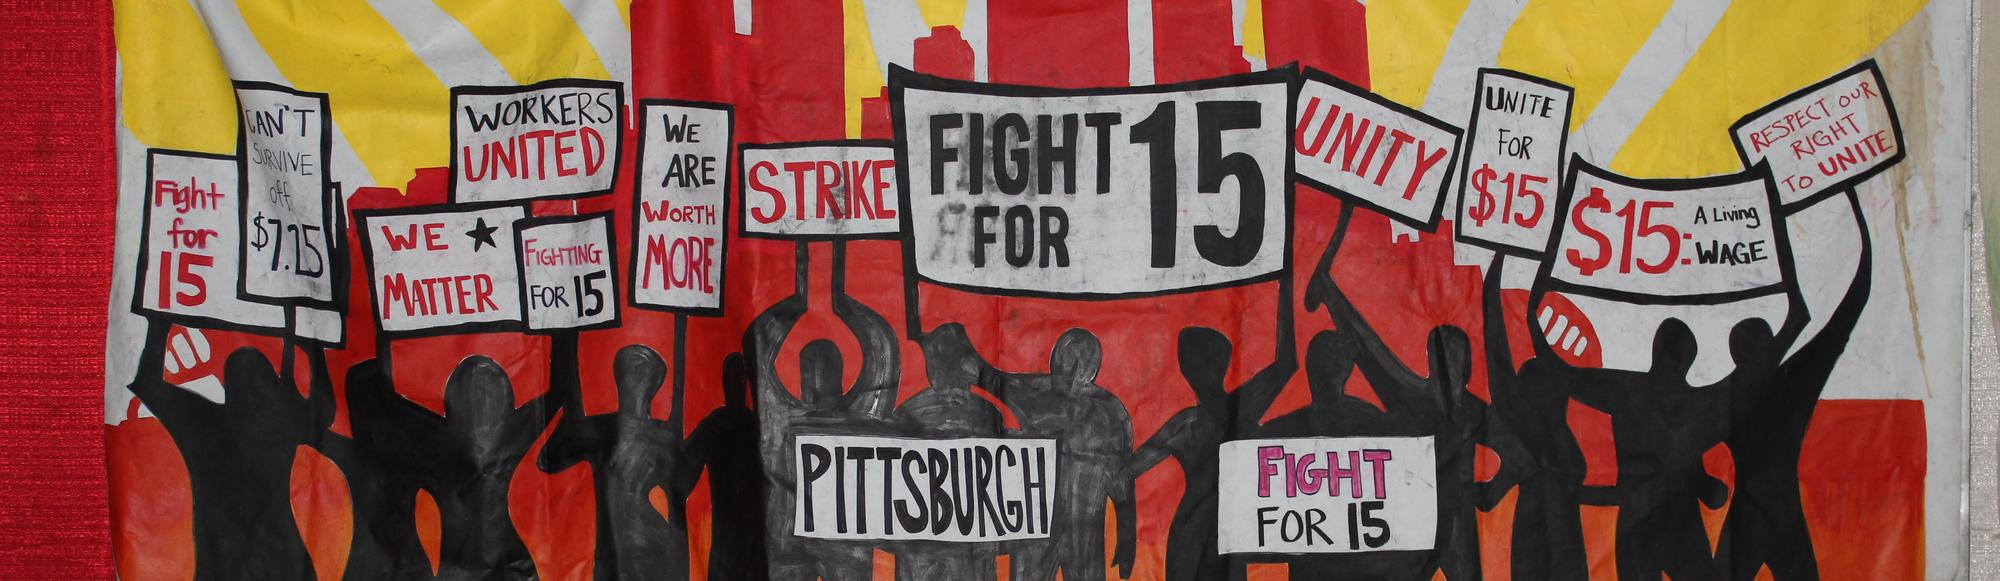 Birth of a Union: Nationwide Fast Food Workers Convention Is Underway